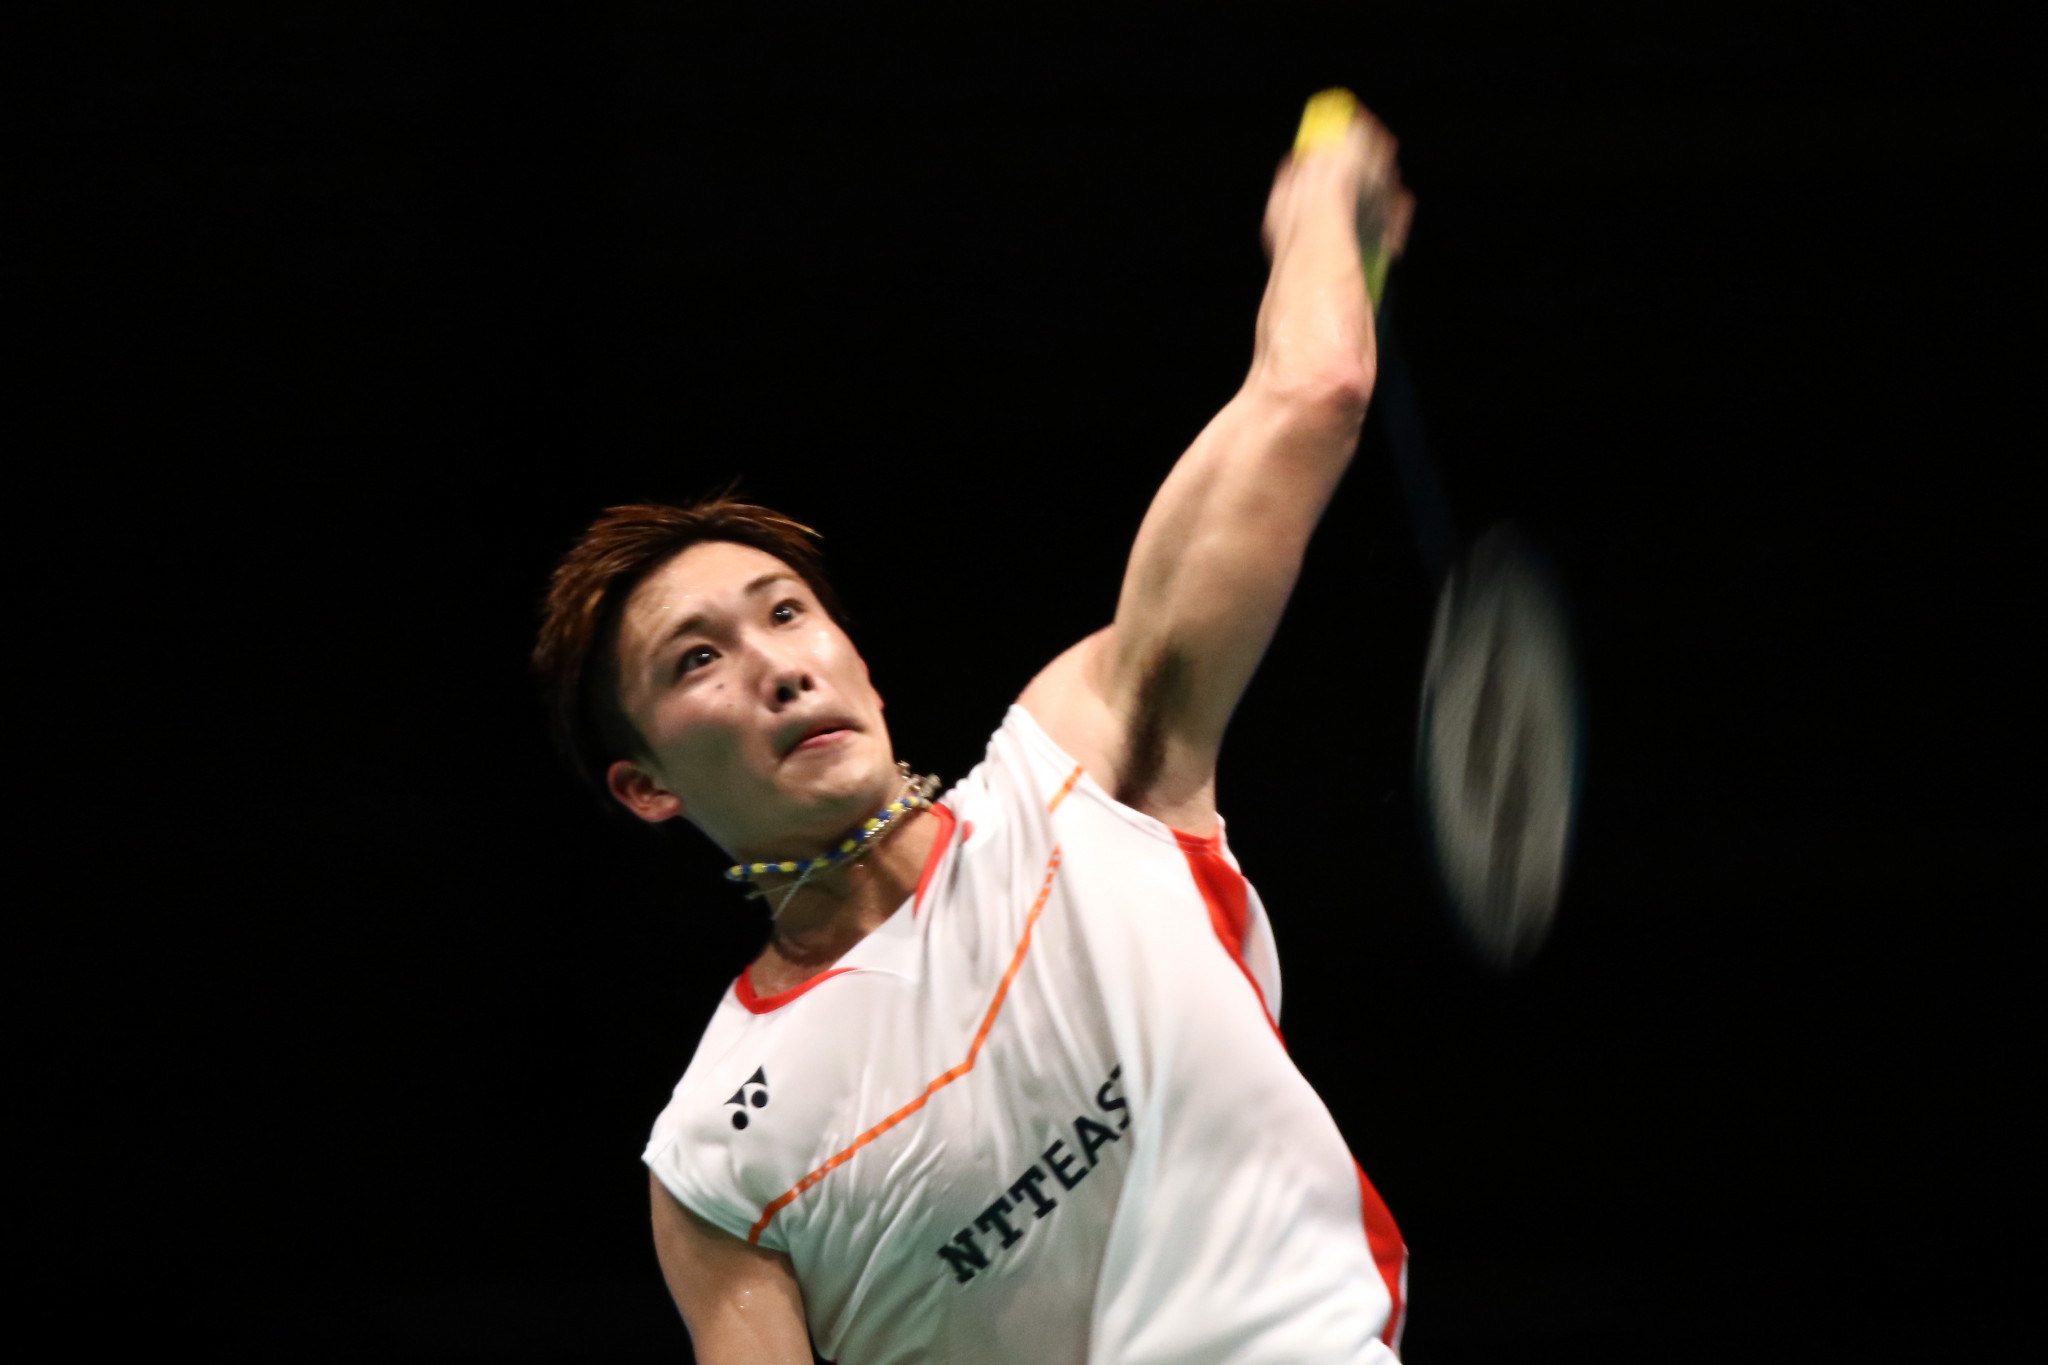 Kento Momota reached the men's singles final in Macau ©Getty Images